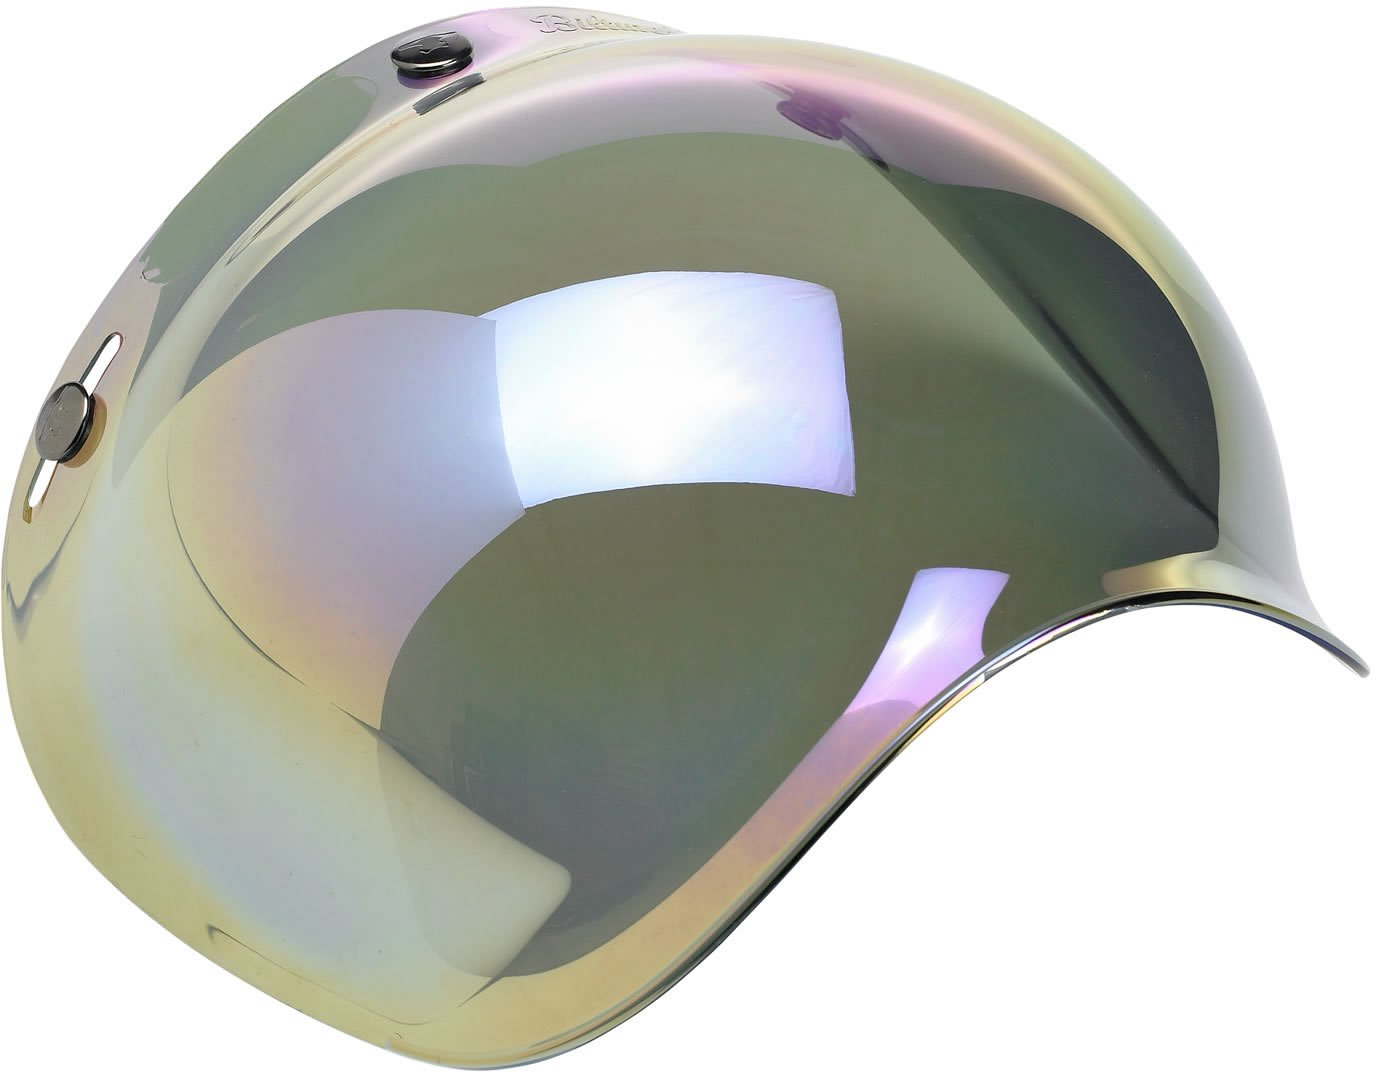 946ff5a7 Amazon.com: Biltwell Smoke Tint Bubble Shield (Chrome Mirror, One Size):  Automotive